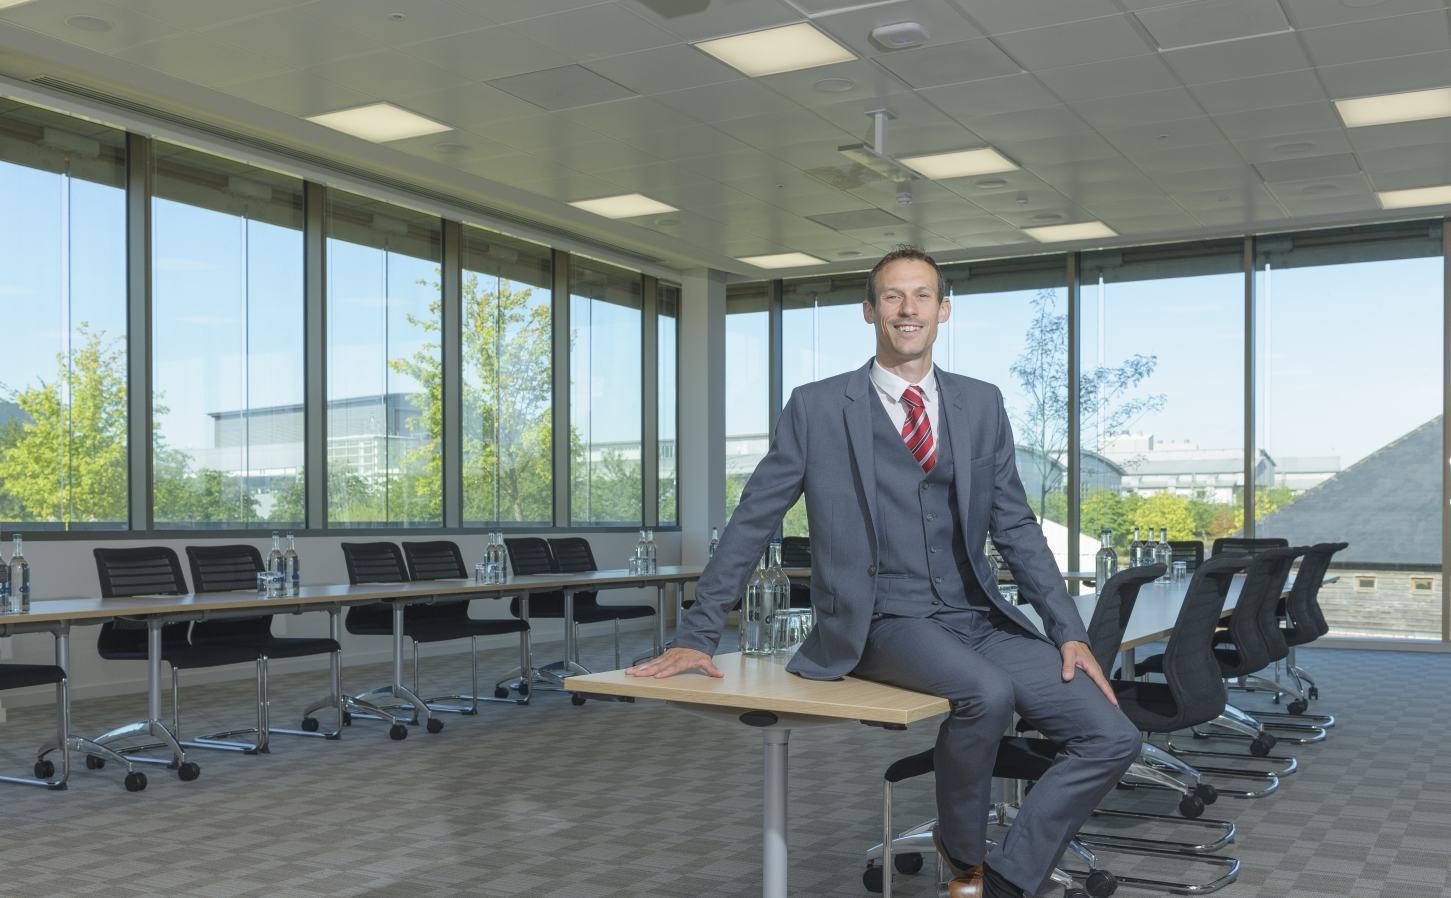 Andrew Bell, new manager of the Granta Centre, in one of its modern conference rooms